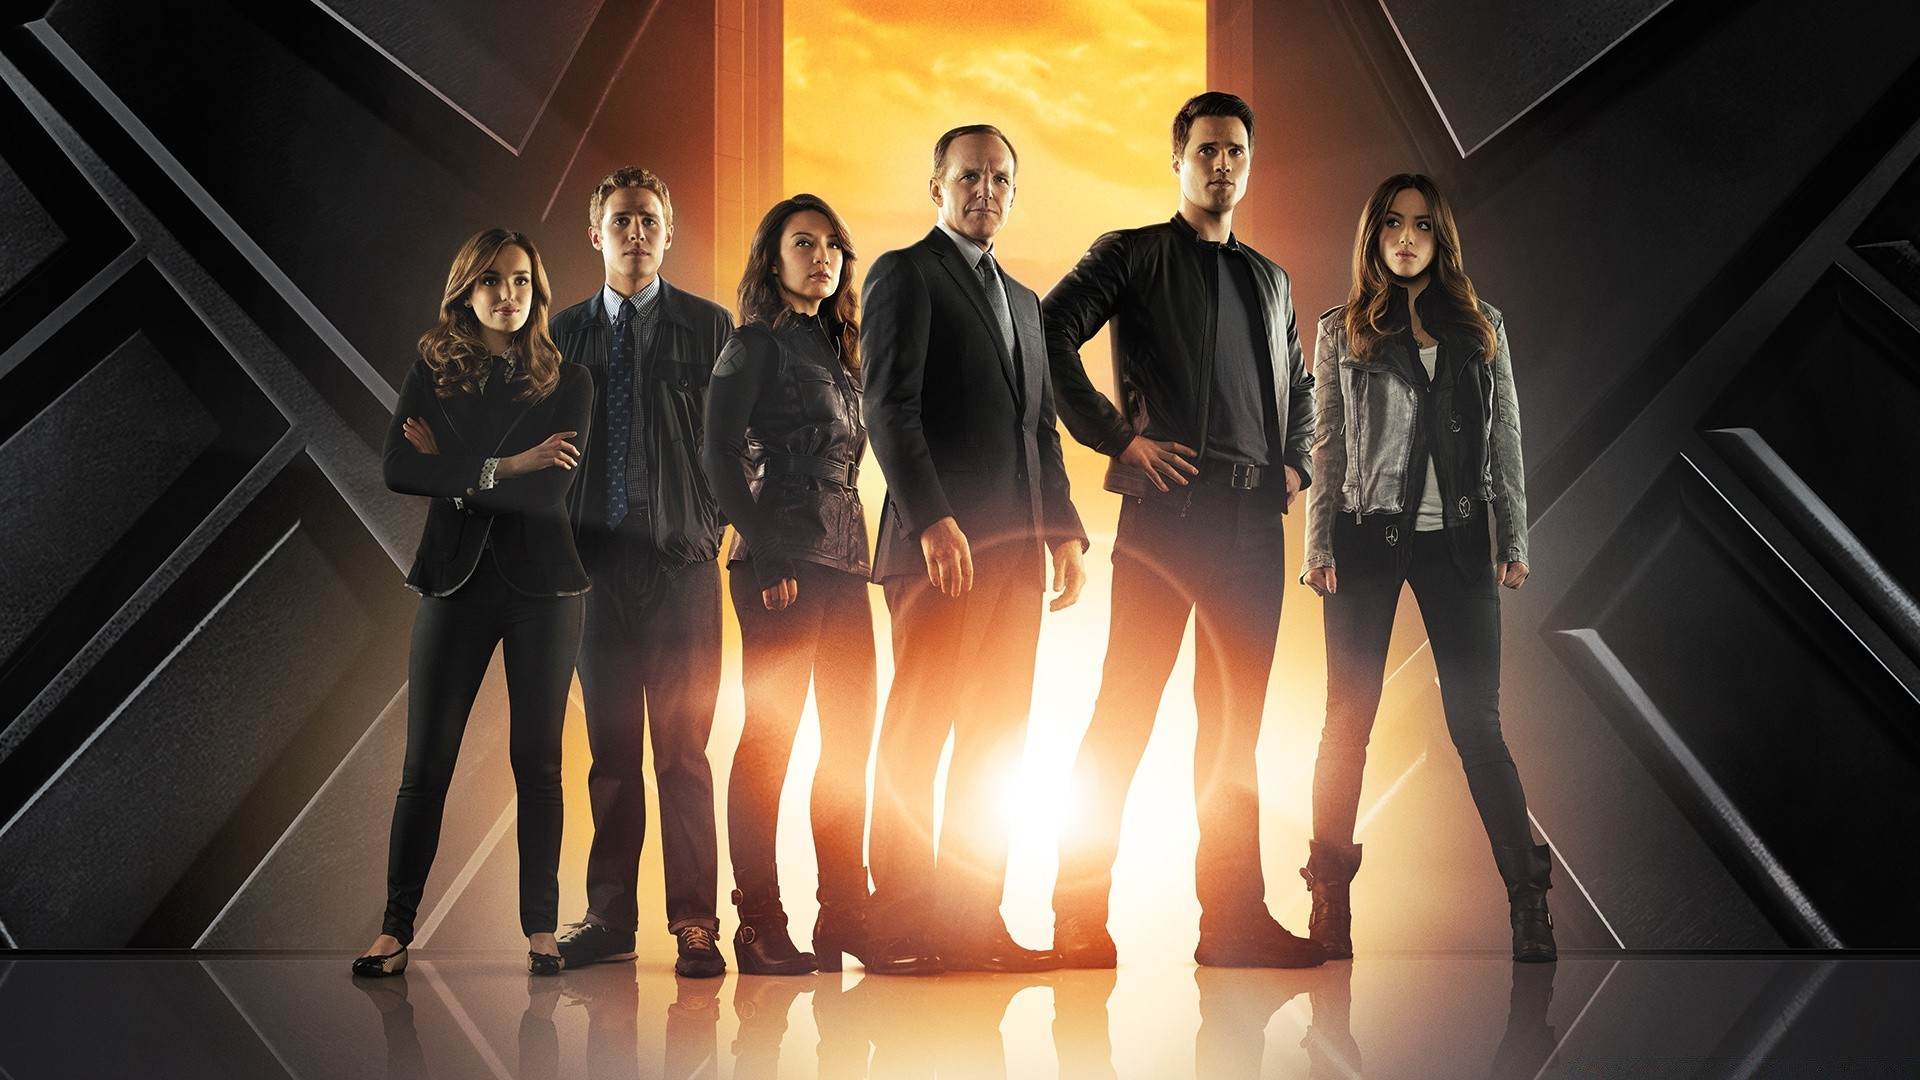 Marvel S Agents Of Shield Cast Android Wallpapers